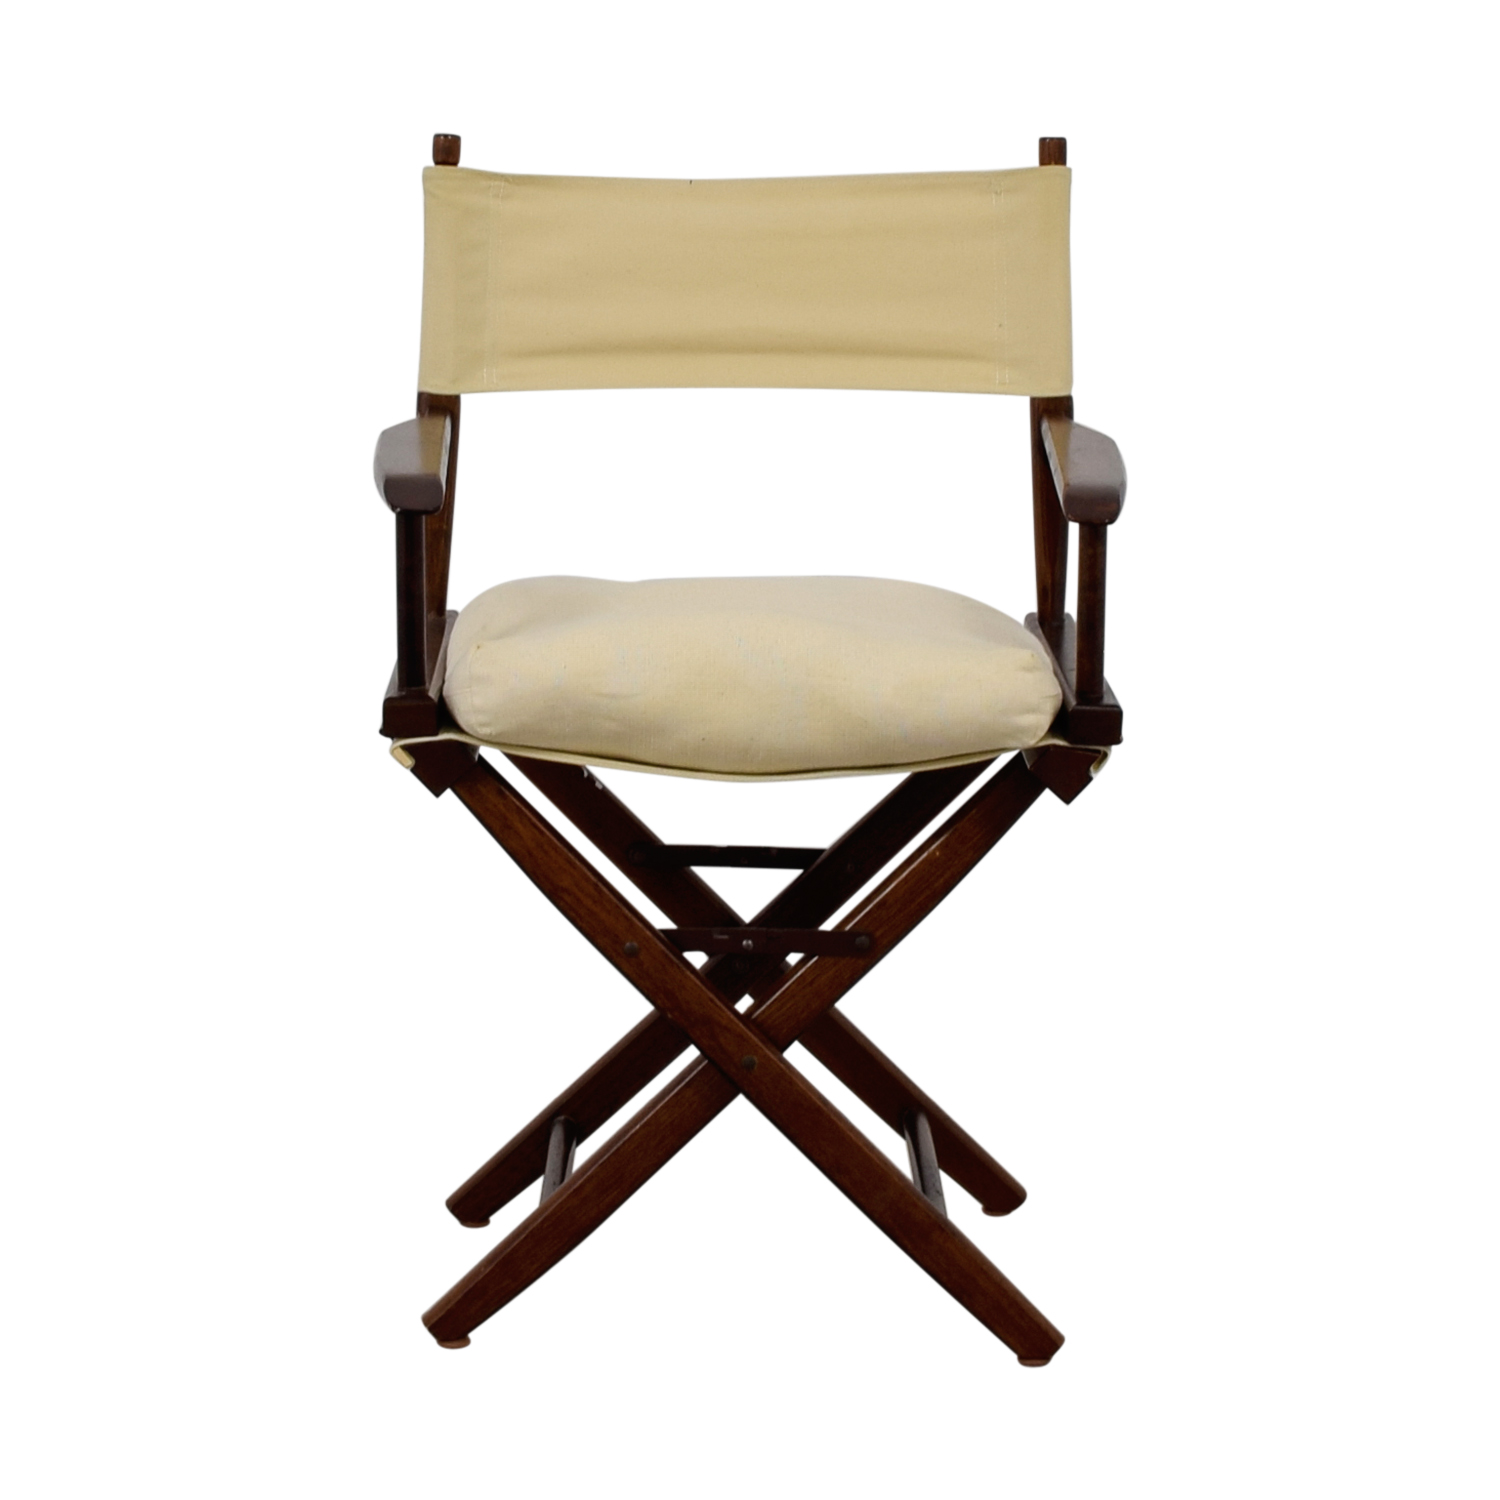 buy Pier 1 Pier 1 Director Chair online